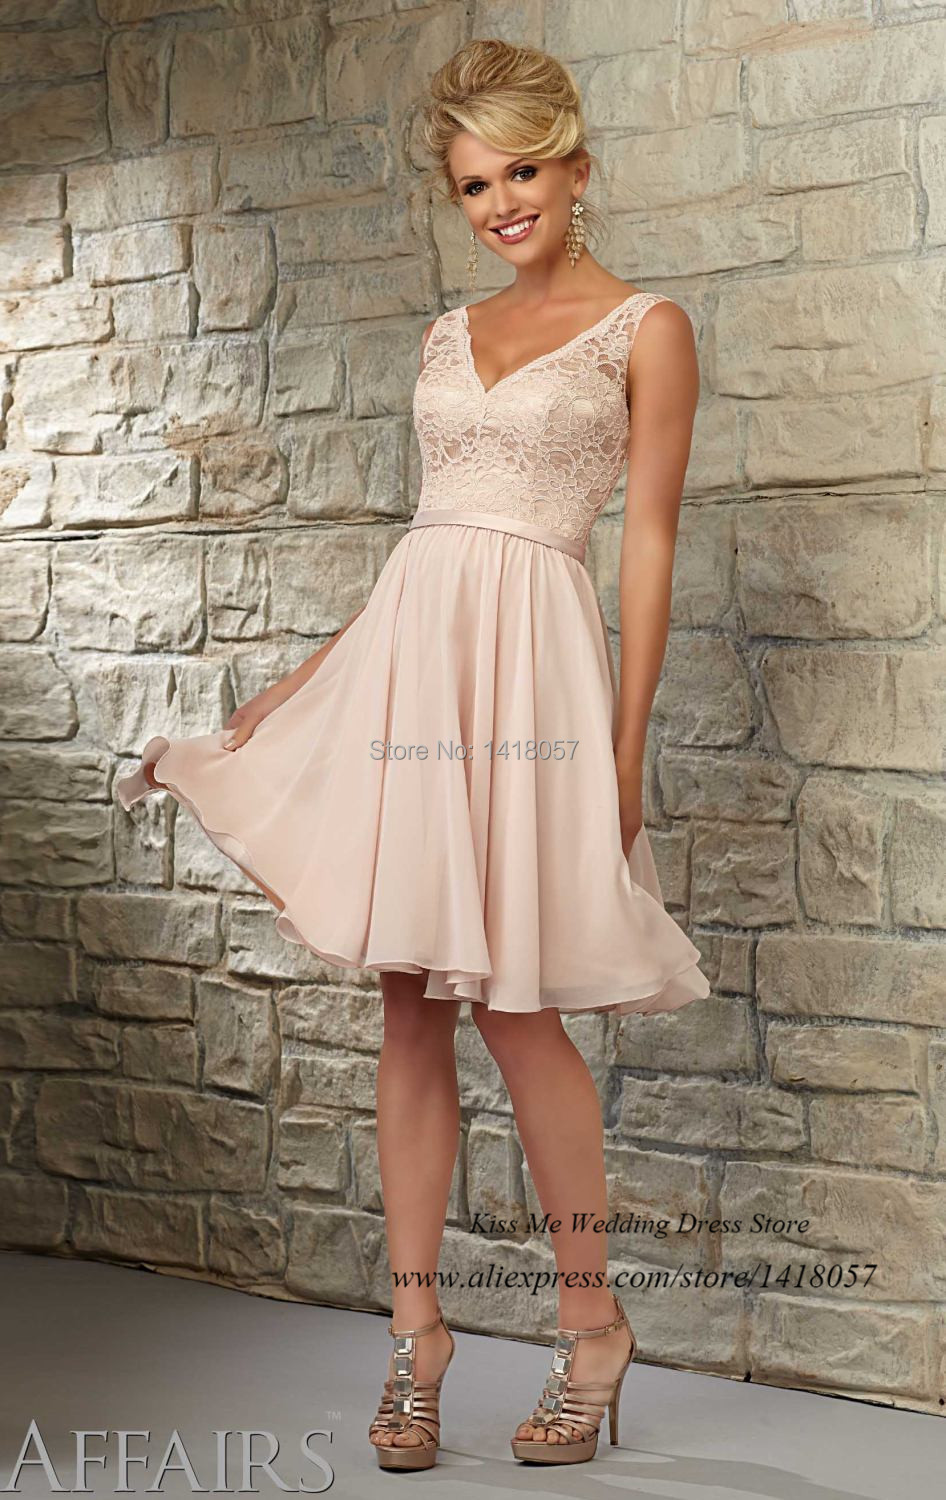 Aliexpress.com : Buy Modest Light Pink Lace Bridesmaid Dress for ...